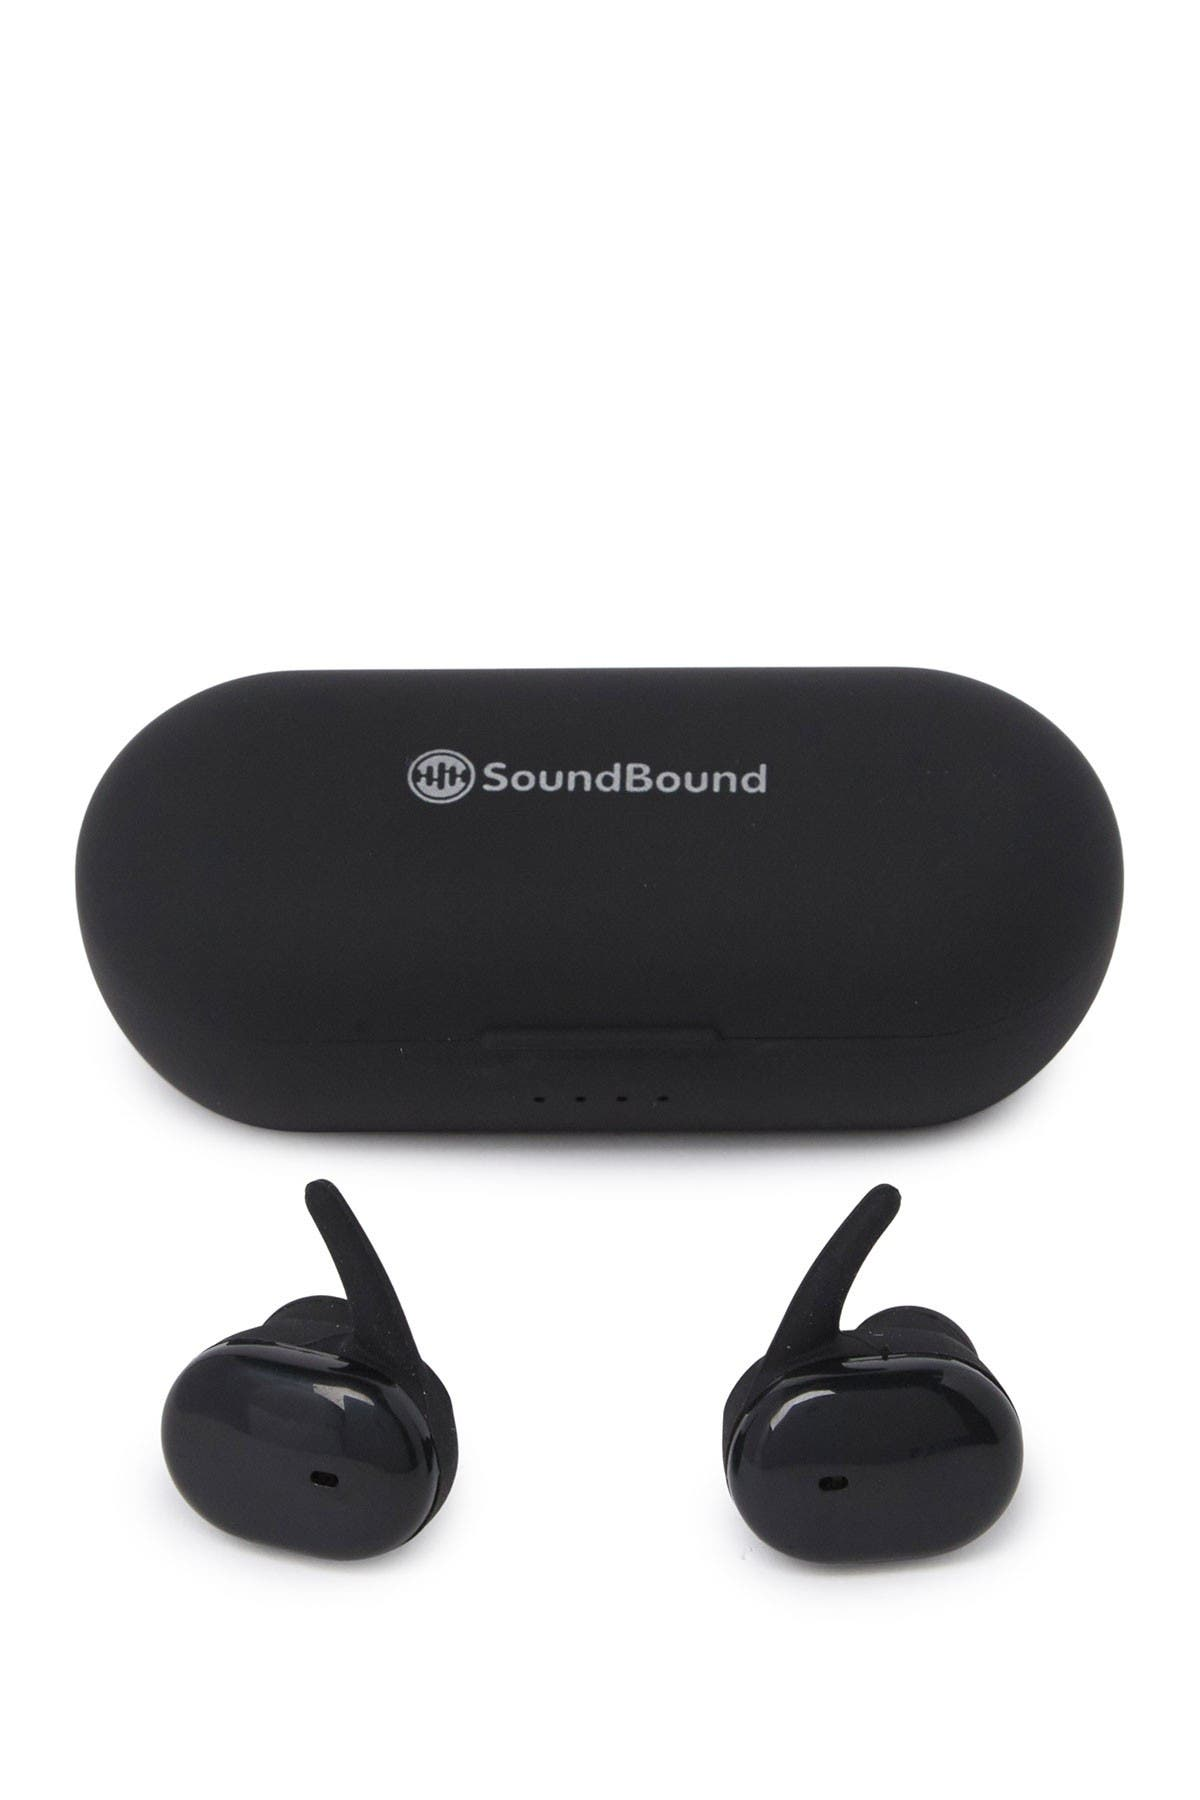 Image of LIFEWARE SoundBound True Wireless Stereo Wingtip Sport Sweat Resistant Earbuds